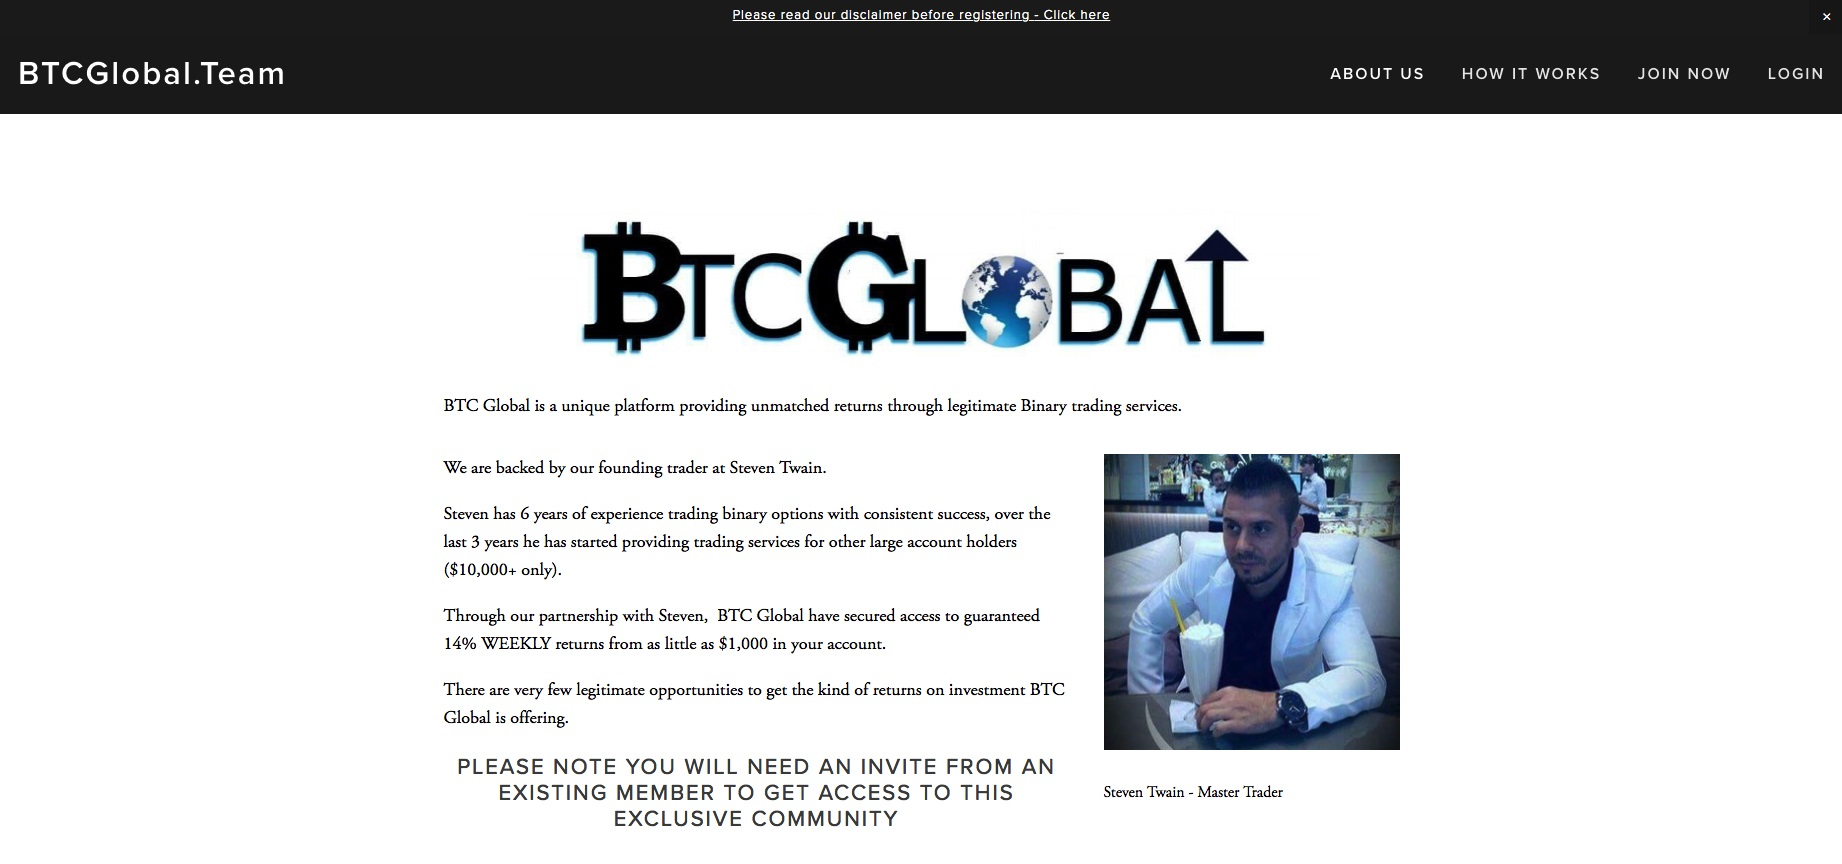 btcglobal.team - BTC Global Team